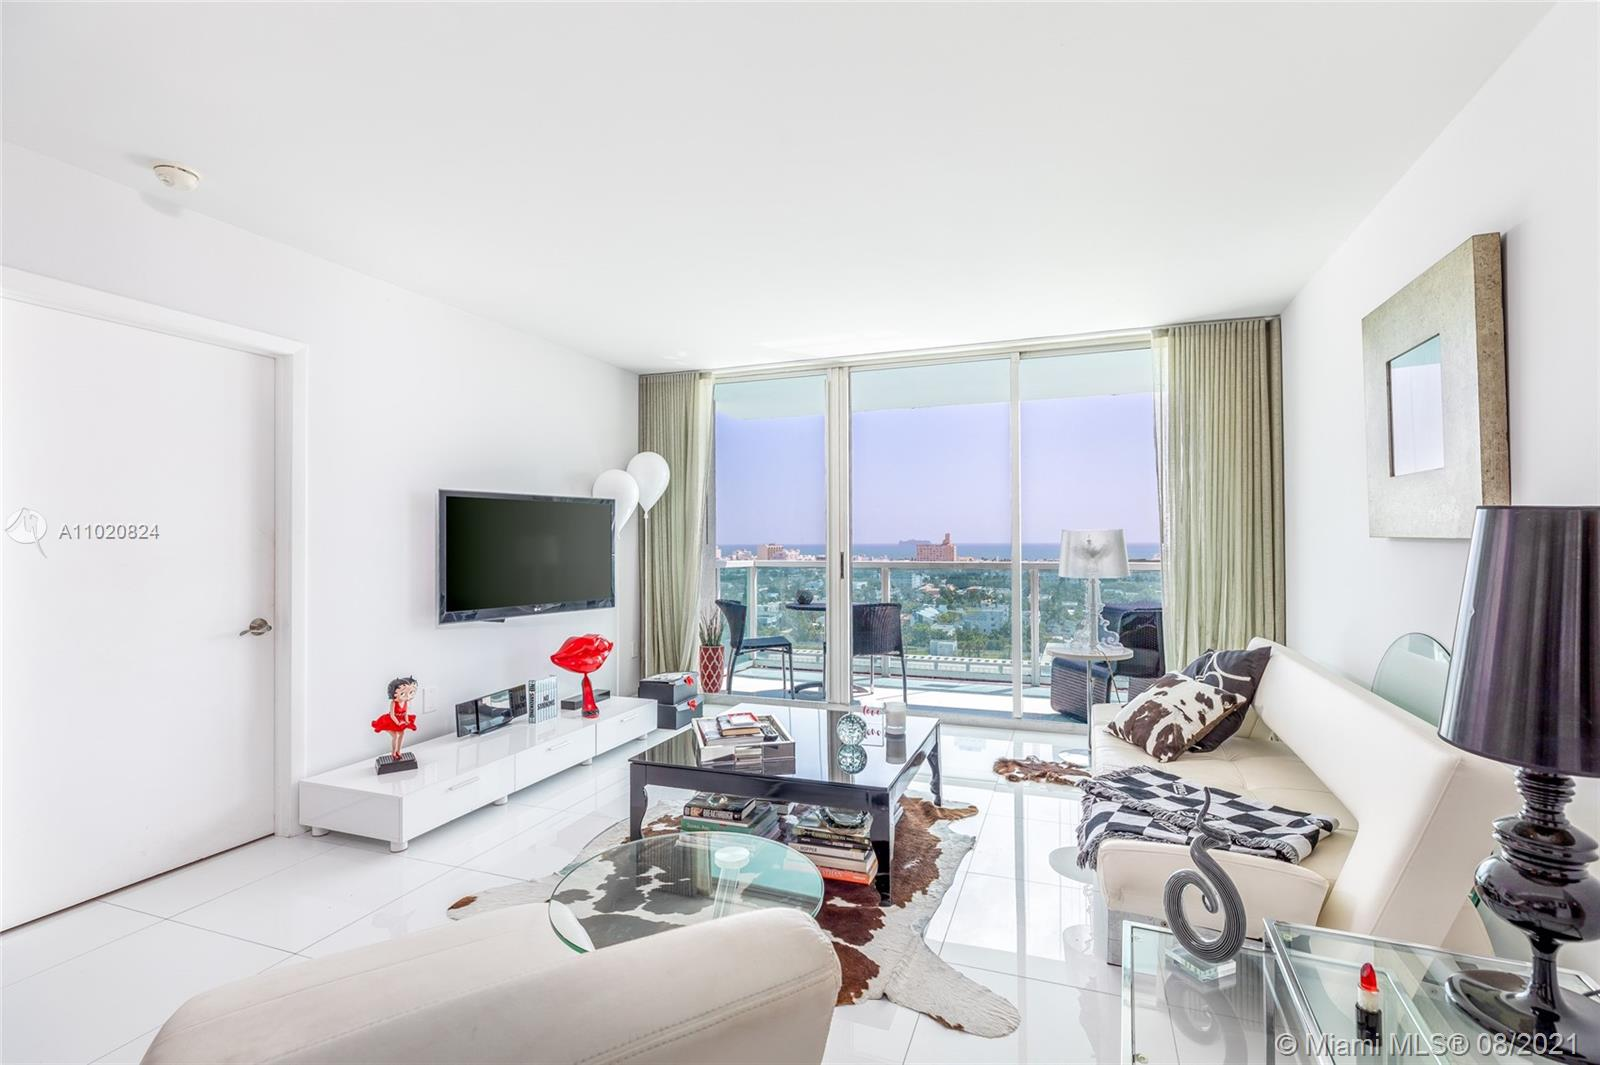 Wake up to the views of the Ocean and Miami Beach from this renovated 2 bed 2 bath condo filled with sunlight. Split floor plan, spacious, large porcelain tile throughout , Kitchen partially open to the living room with quartz countertops, stainless steel appliances and Washer and dryer in unit. Modern bathrooms with enclosed shower and bath tub. Master bedroom features a large walk in closet and dressing area. The Floridian is bay front building conveniently located on West Ave, just minutes away to beach, grocery stores and entertainment, it offers vast array of amenities including 2 pools, spa, boat docks, full gym, tennis court, business center, concierge, 24 hour security and covered secure parking.